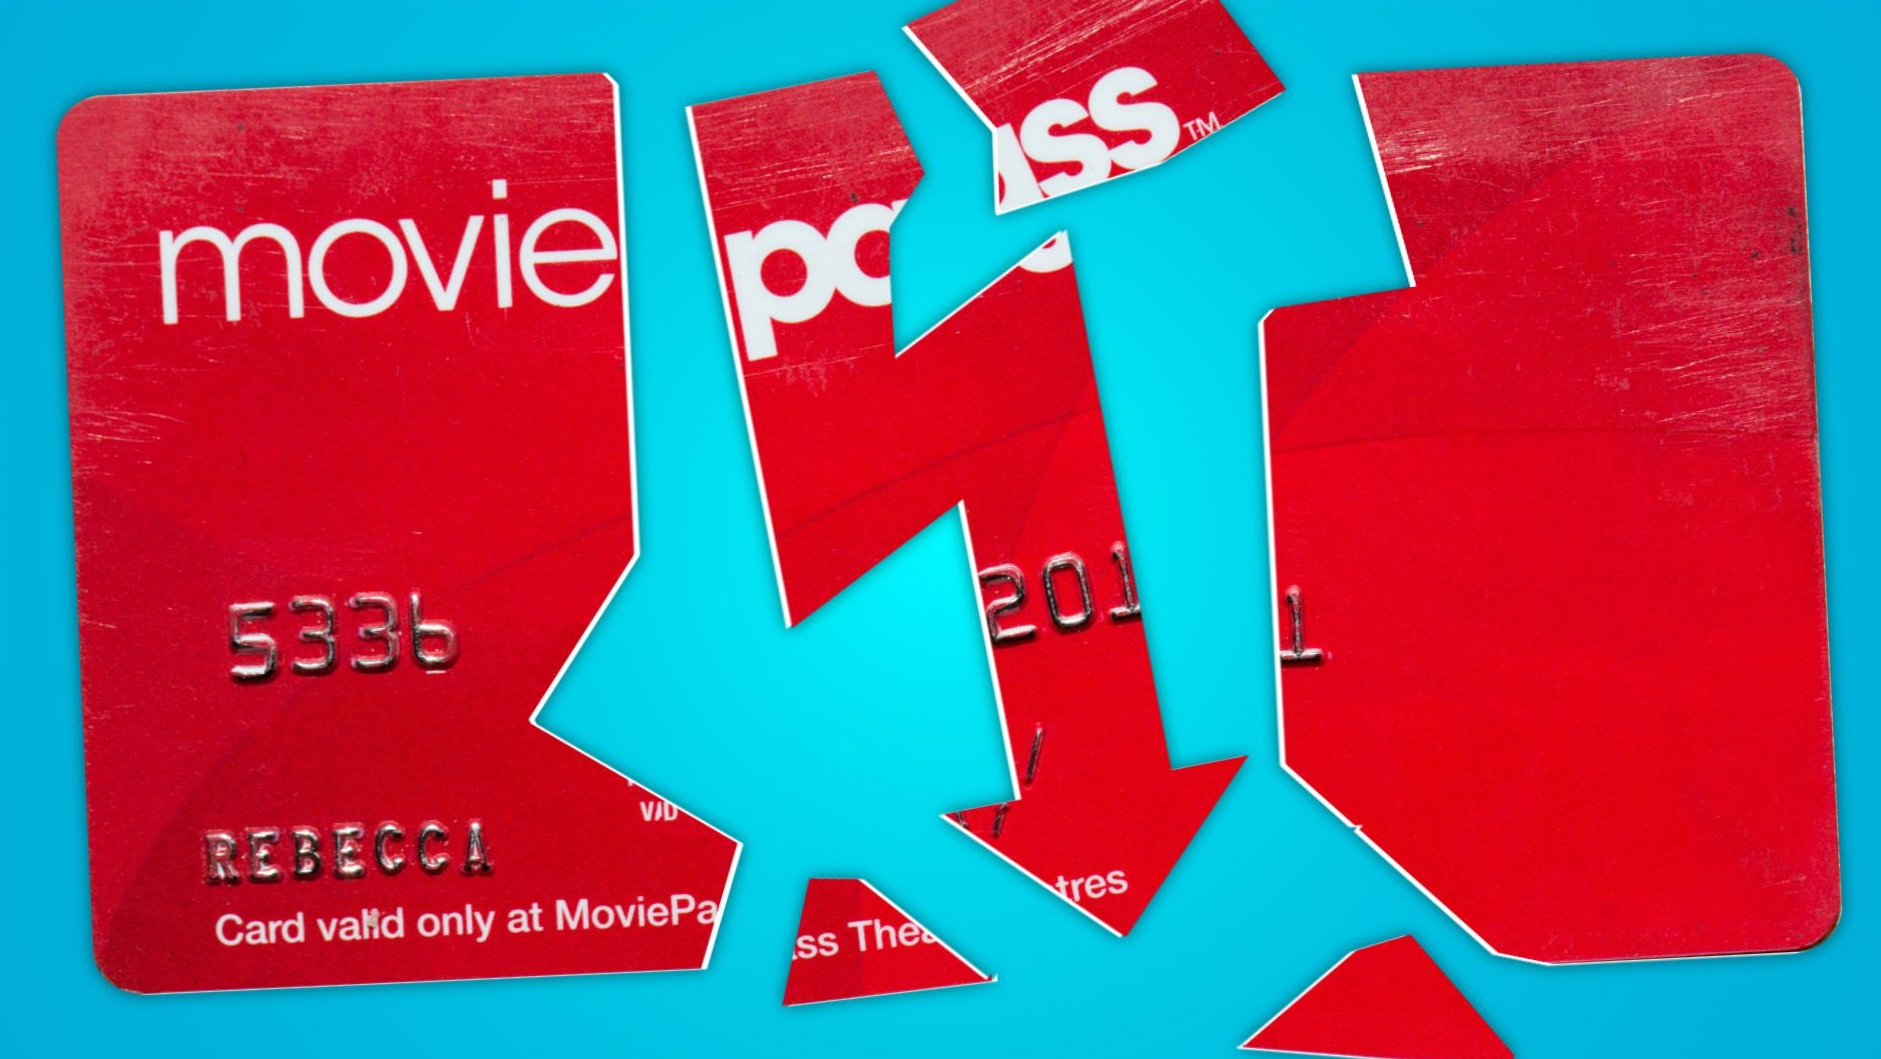 MoviePass parent company greenlights plans to distance itself from the troubled firm